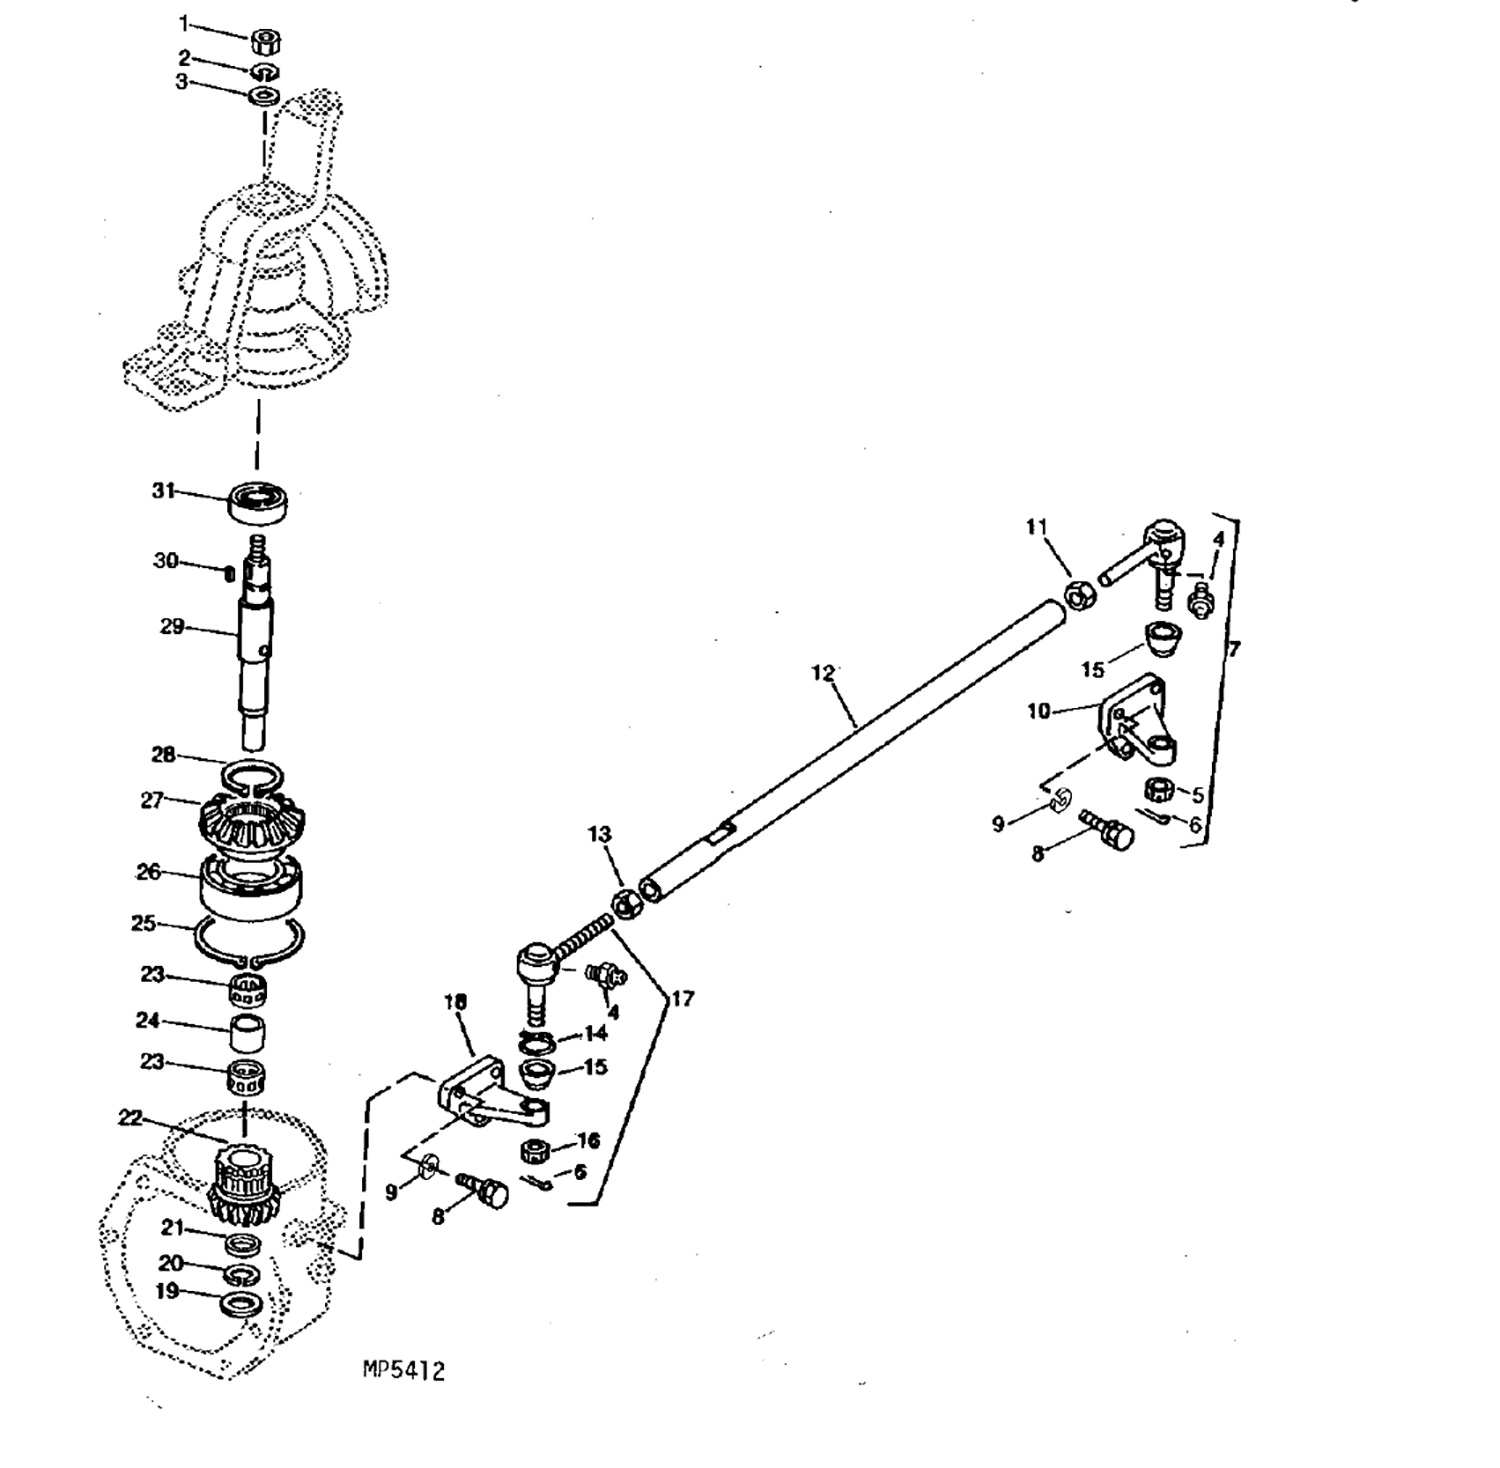 john deere 4210 parts diagram john image wiring front axle parts for john deere compact tractors on john deere 4210 parts diagram